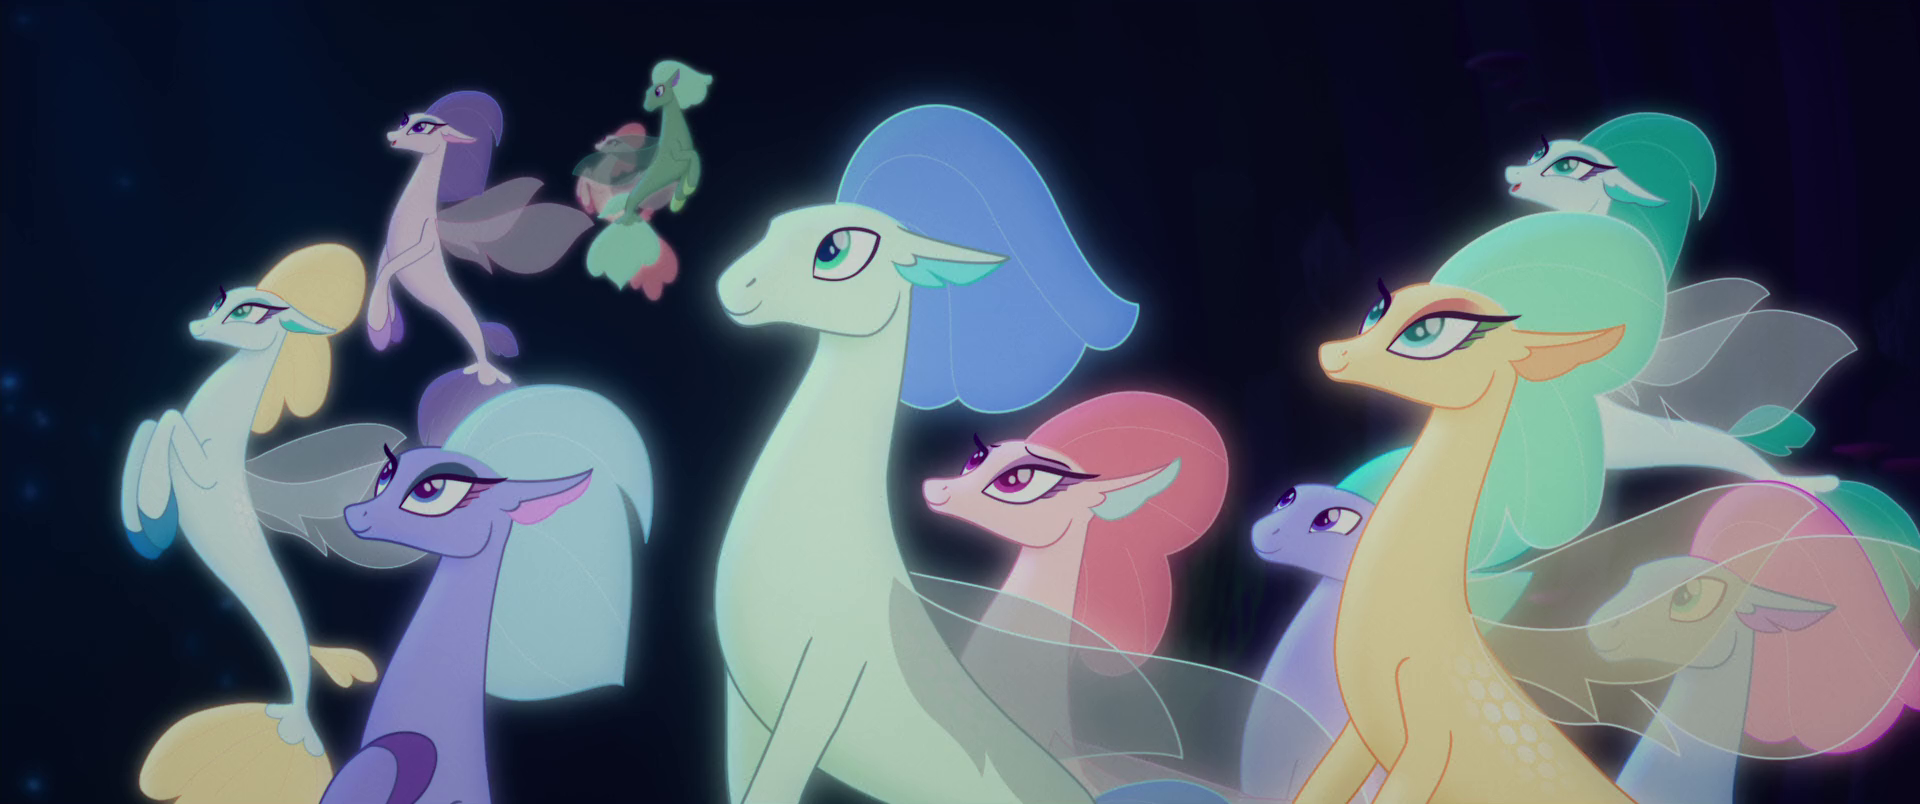 https://vignette.wikia.nocookie.net/mlp/images/a/a1/Seaponies_listen_to_Princess_Skystar_sing_MLPTM.png